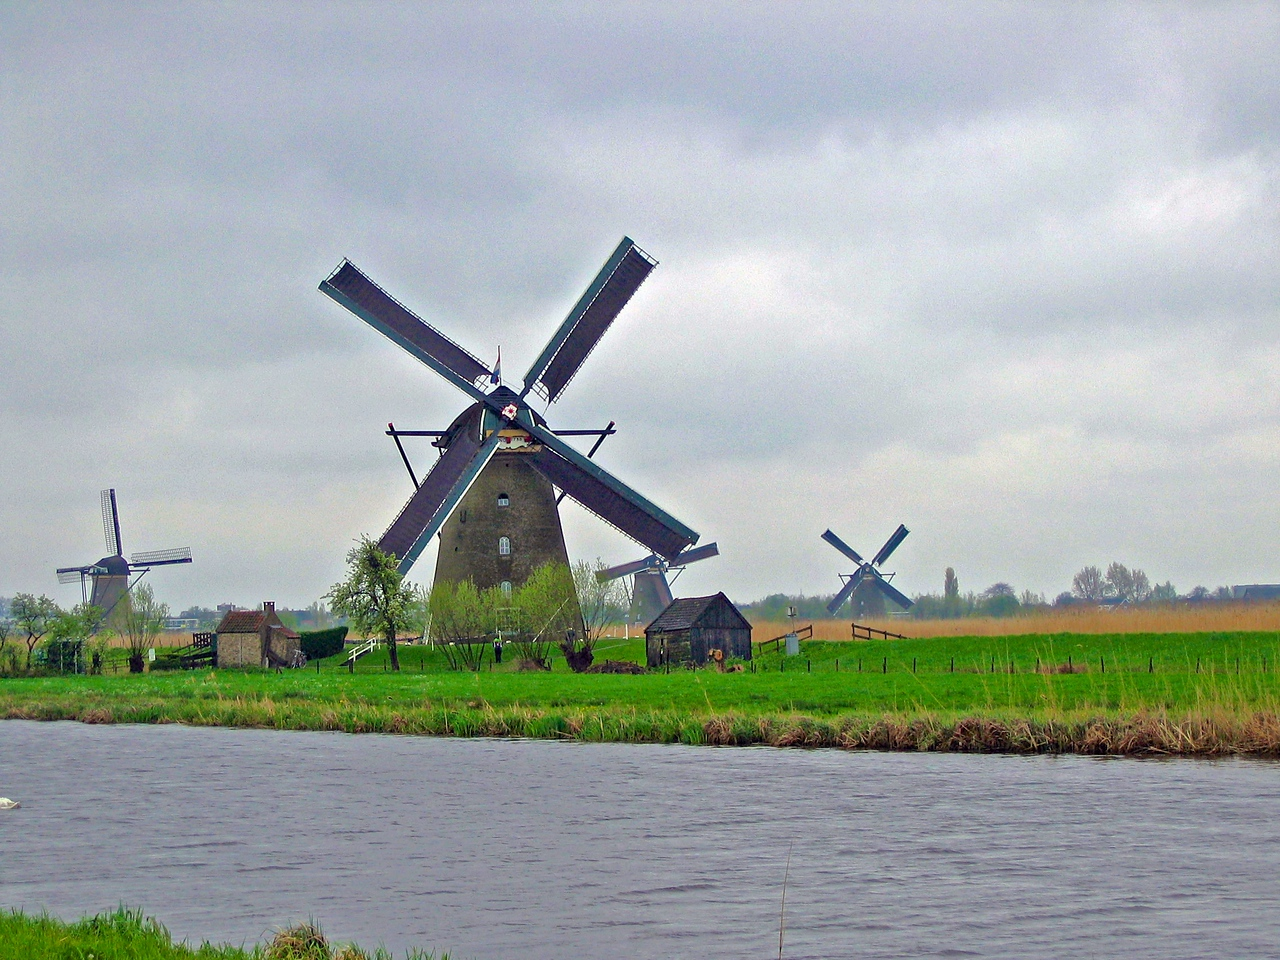 Of the near remaining 1000 windmills, there are more windmills here than in any other part of the world.